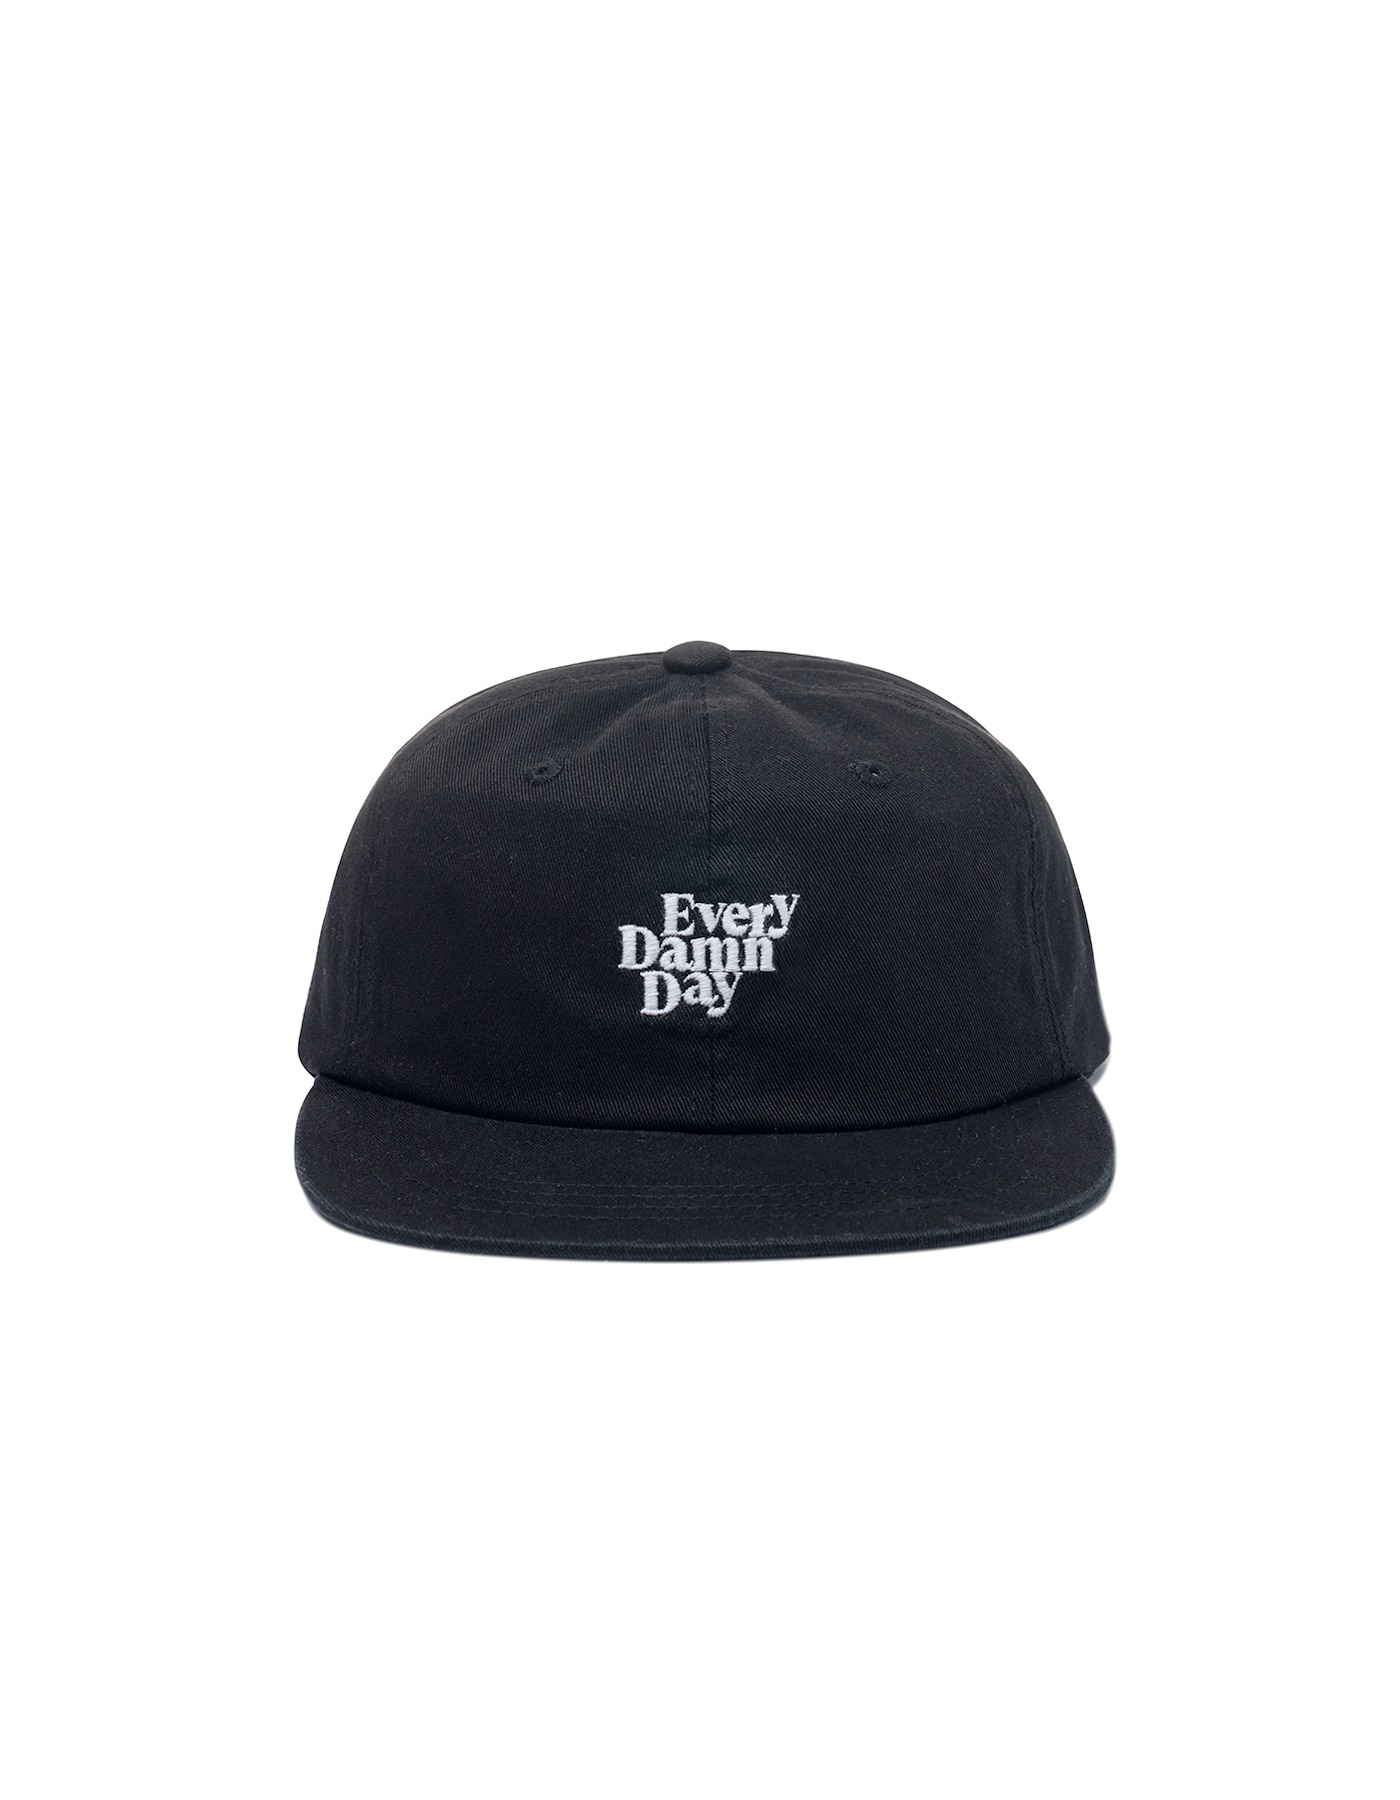 Every Damn Day Cap- Black